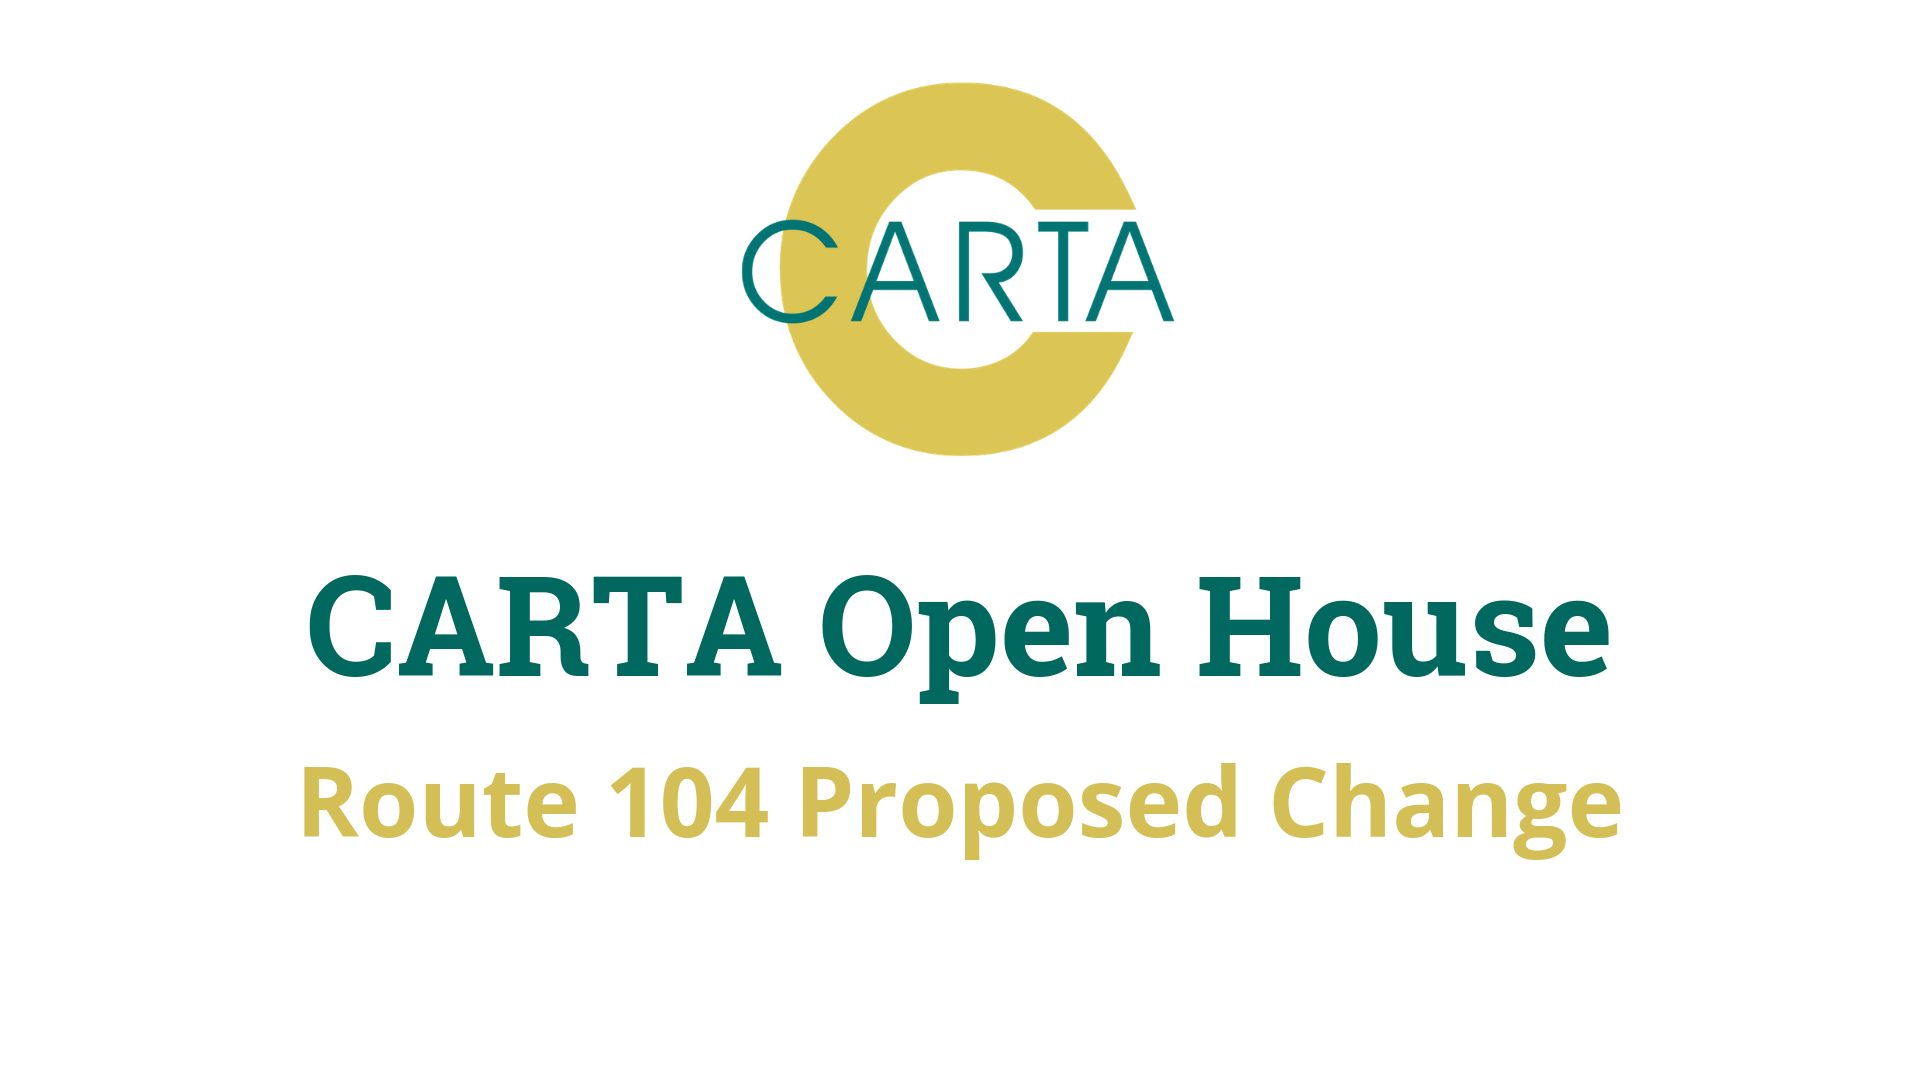 CARTA open house route 104 proposed change